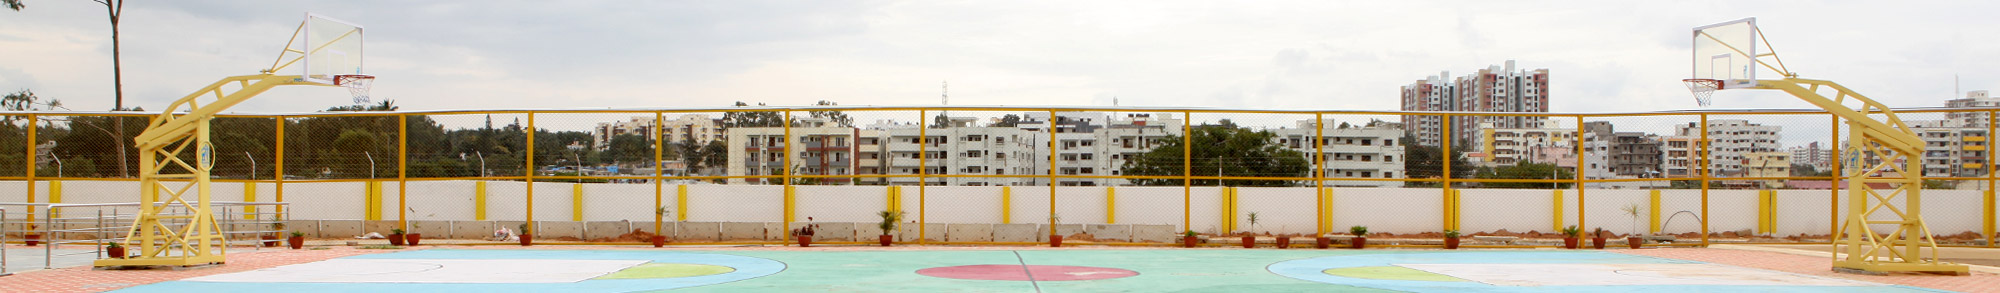 VIBGYOR High School Bannerghatta